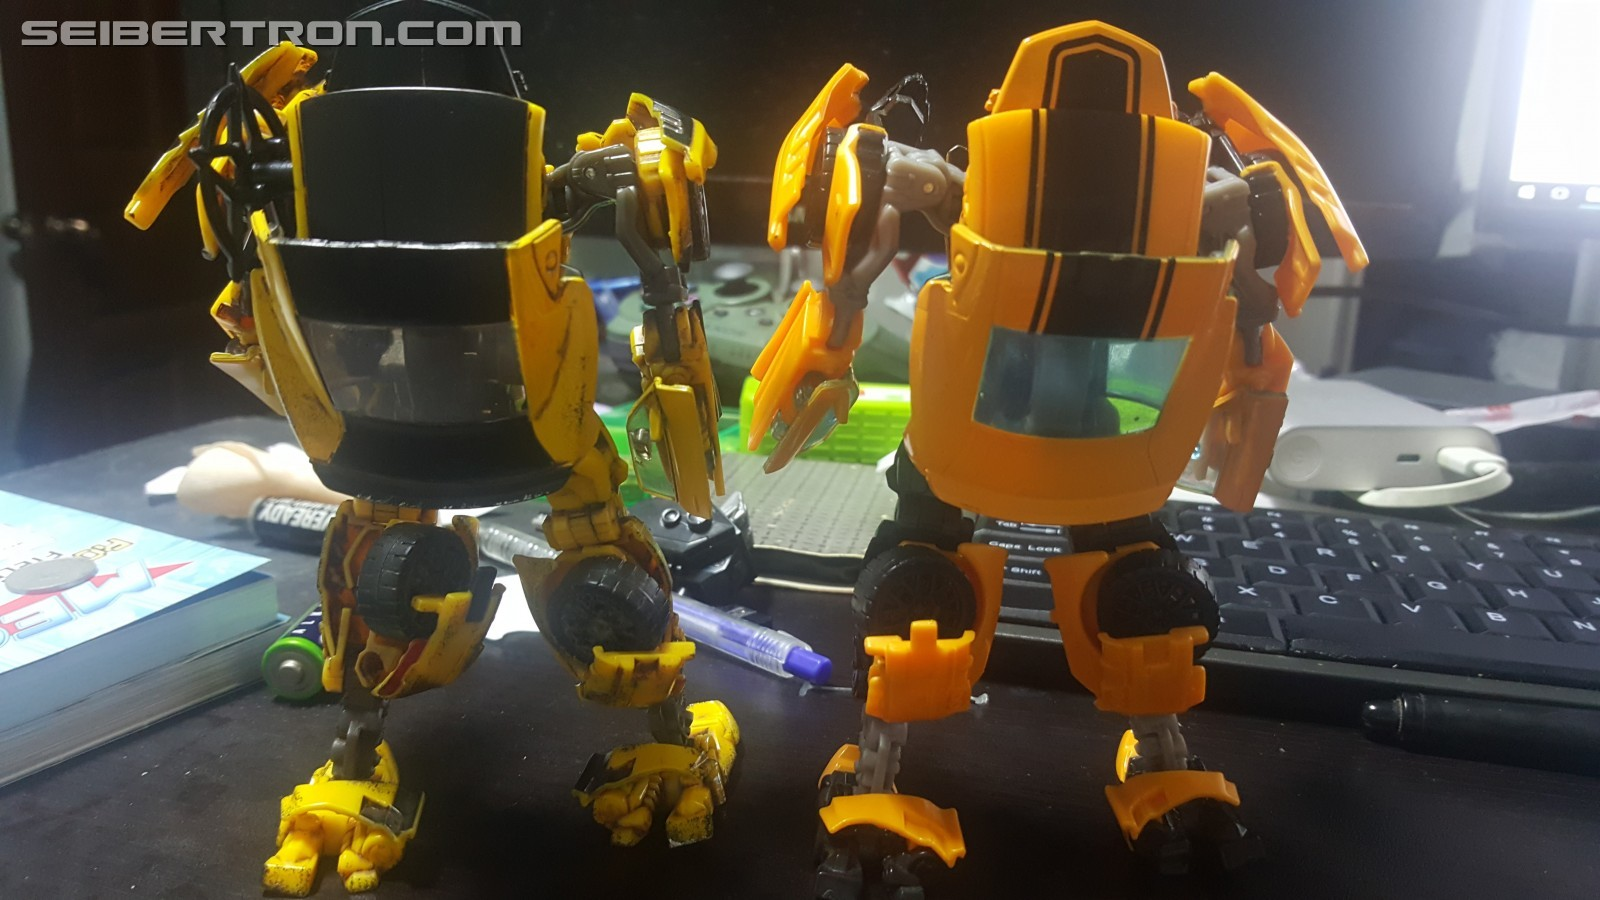 Transformers News: New Image of Limited Edition Battle Damage Bumblebee from Hasbro Singapore Midnight Madness Event